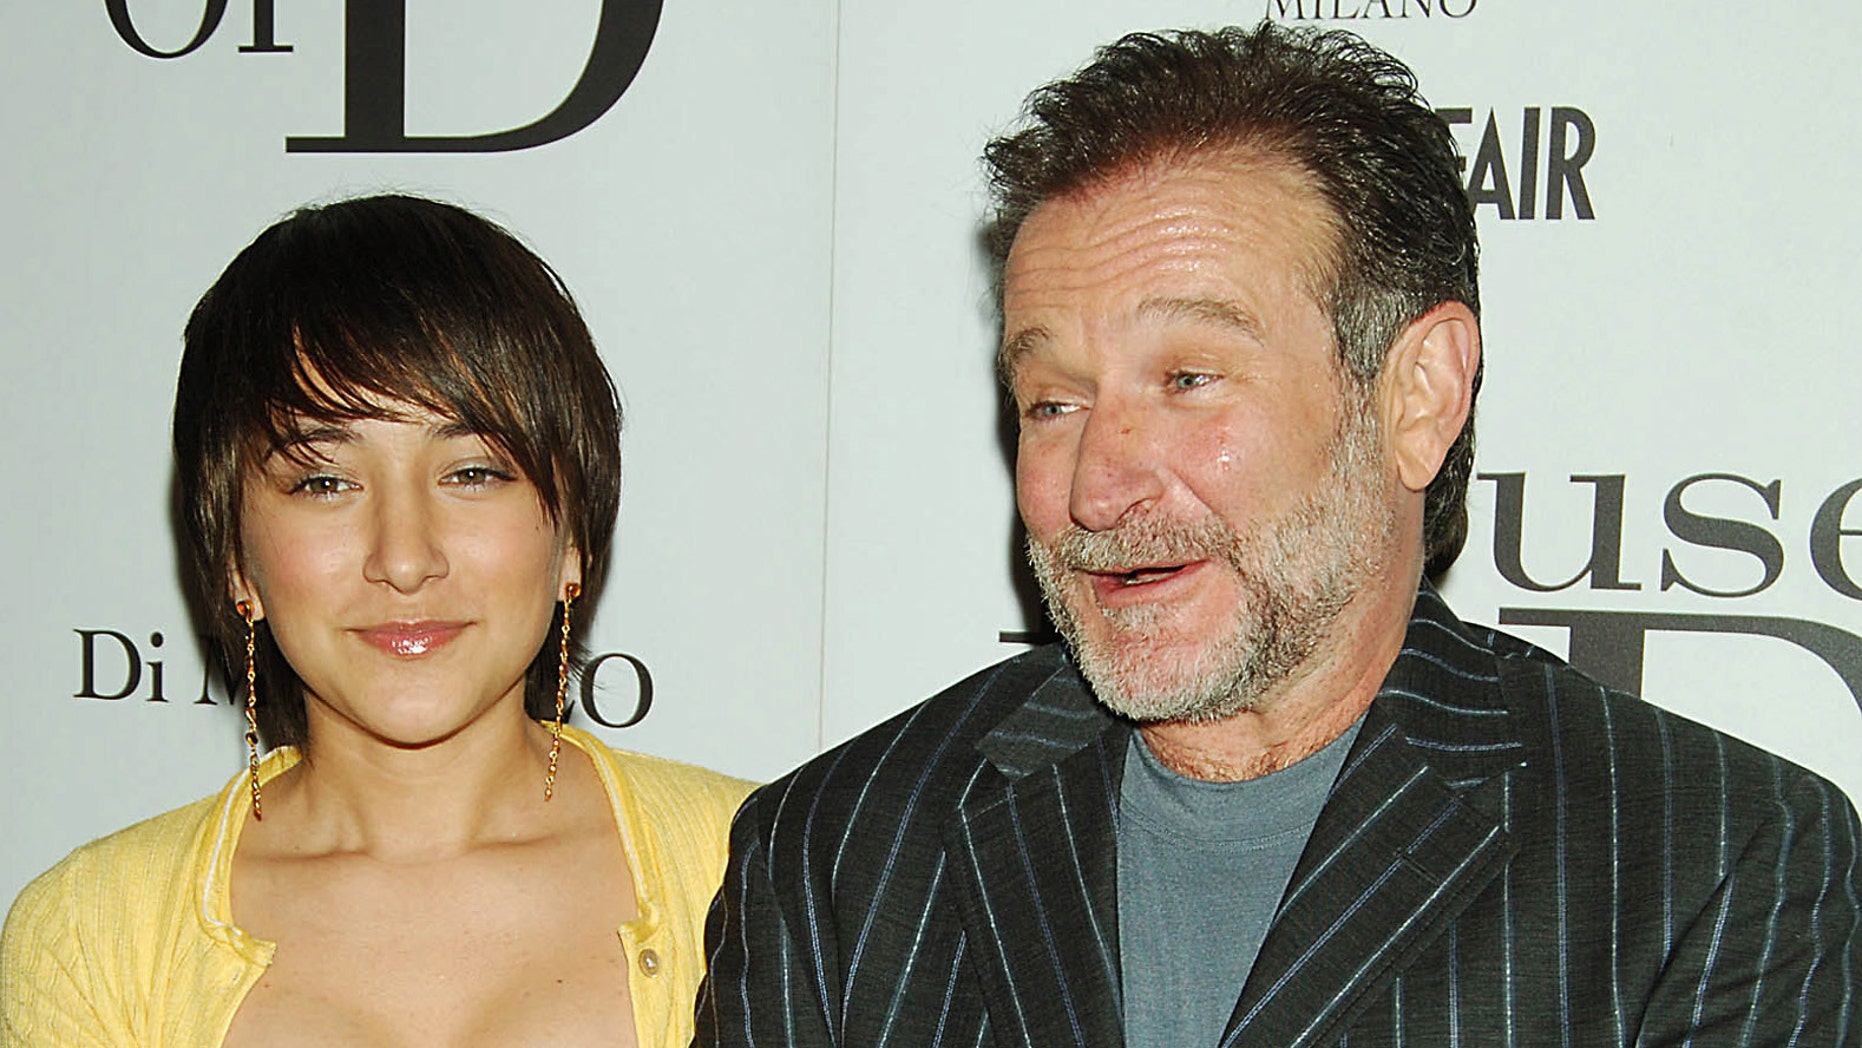 """Williams posed with his daughter Zelda Williams during the premiere of their film """"House of D"""" in 2005."""